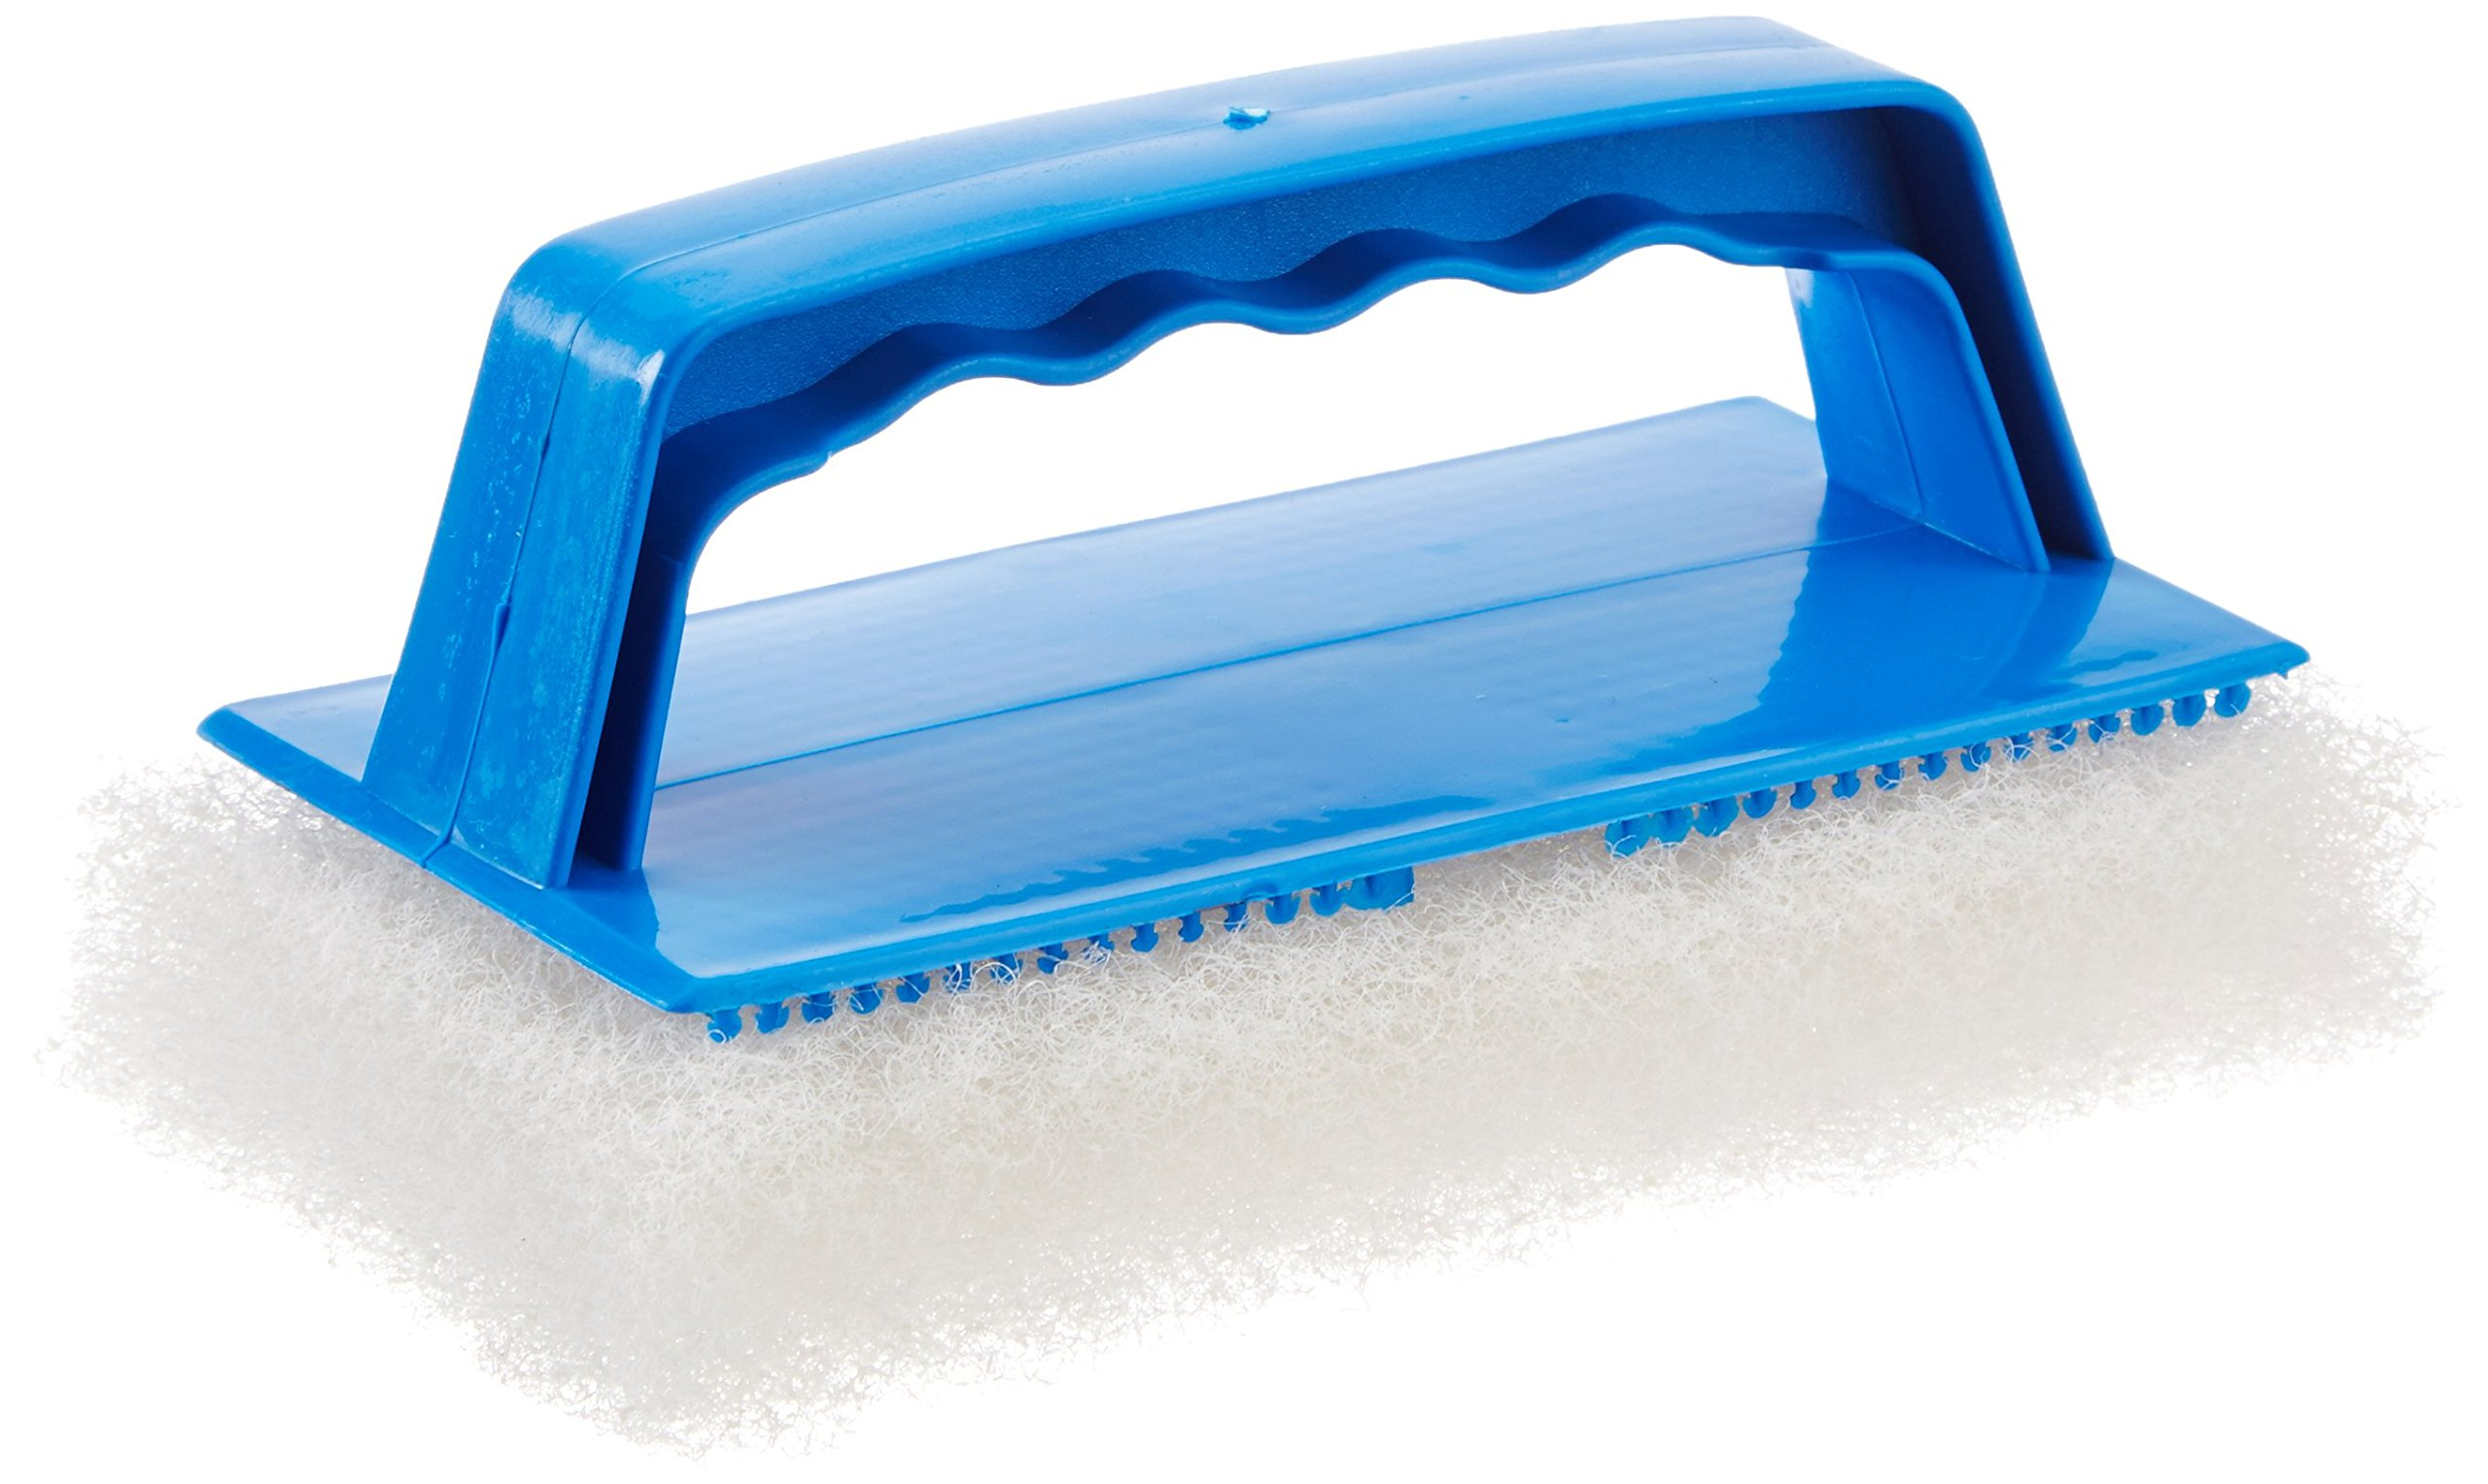 Star brite Scrub Pad with Handle - Choose from 3 Different Textures